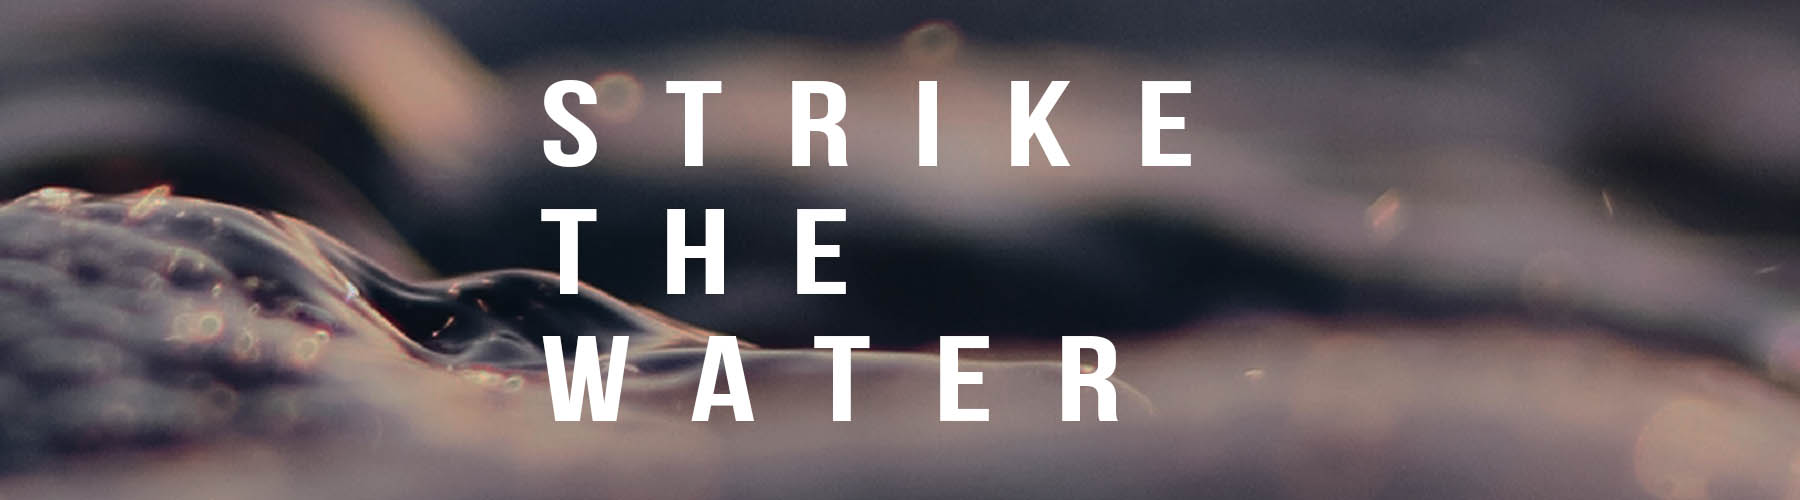 Strike the Water